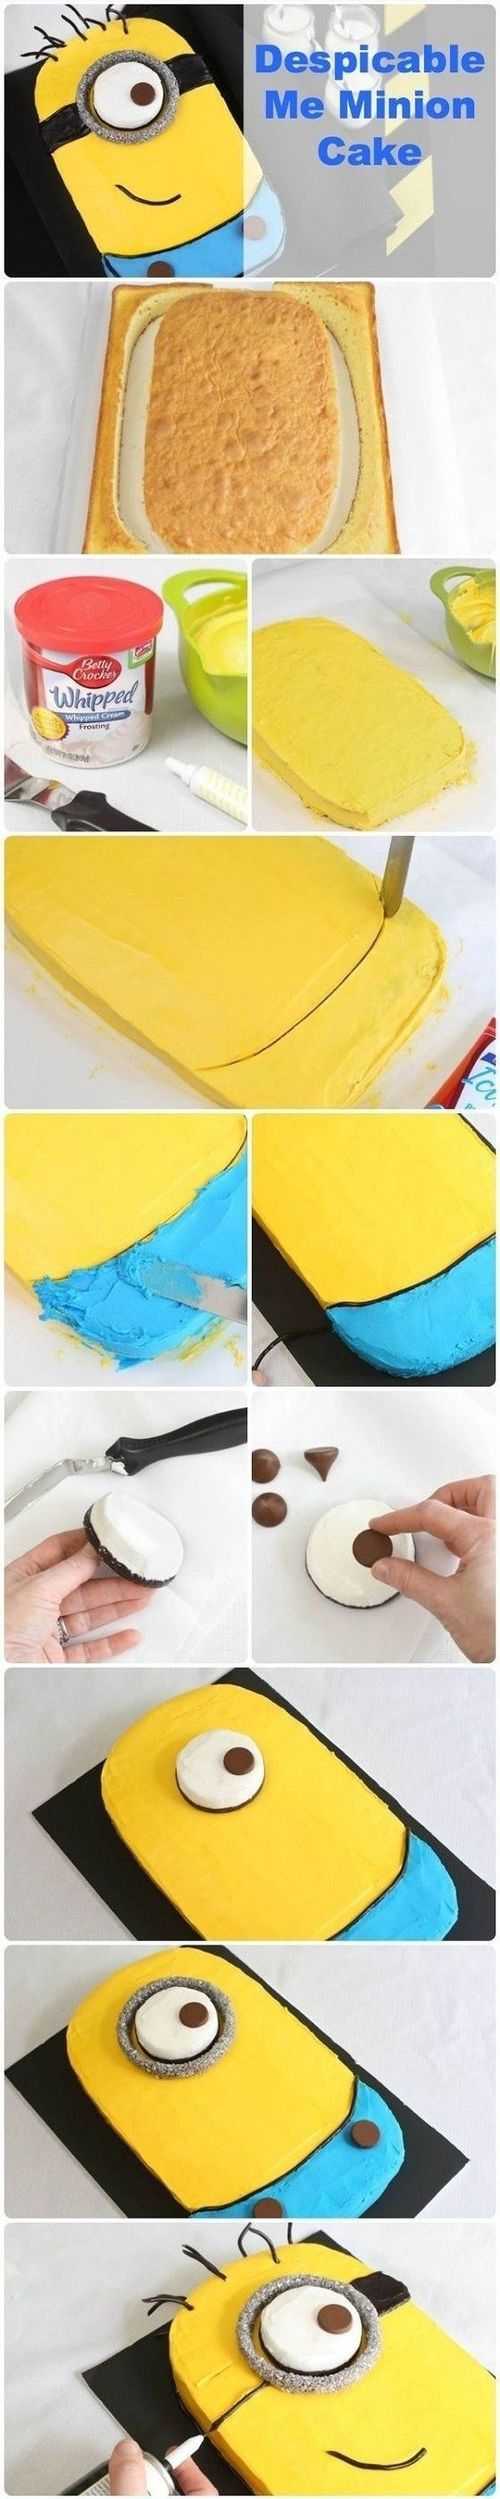 Diy minion cake diy crafts home made easy crafts craft idea crafts diy minion cake diy crafts home made easy crafts craft idea crafts ideas diy ideas diy crafts diy idea do it yourself diy projects diy craft handmade diy solutioingenieria Images